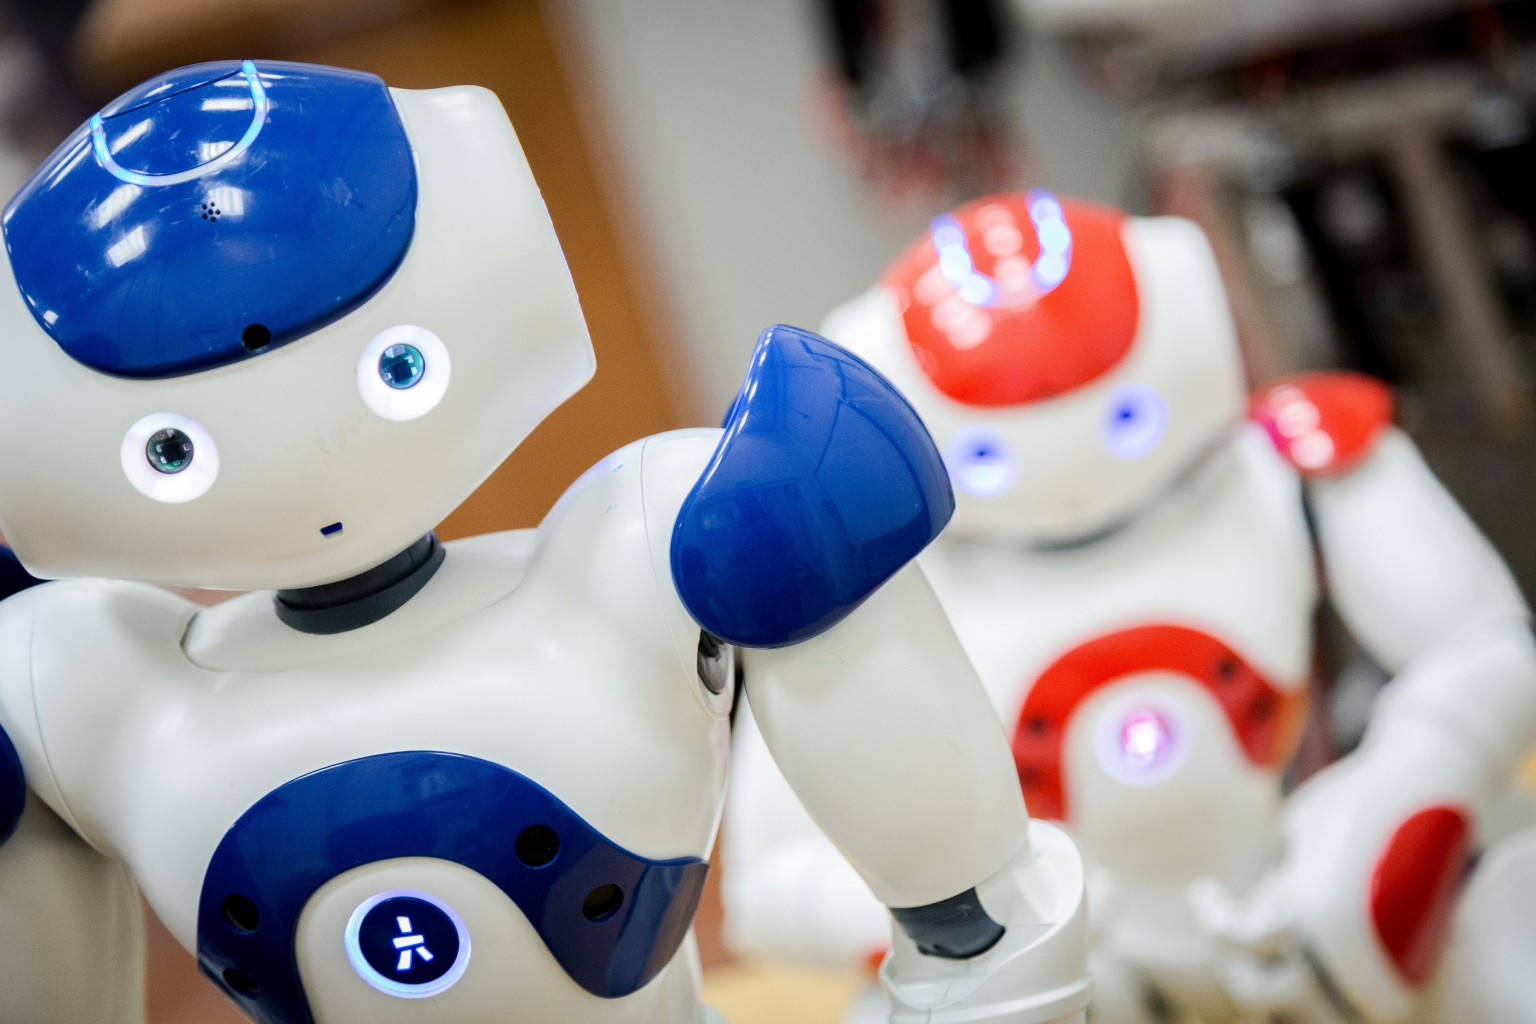 Roboter in der Pflege? CC LizenZ: University of Salford Press Office